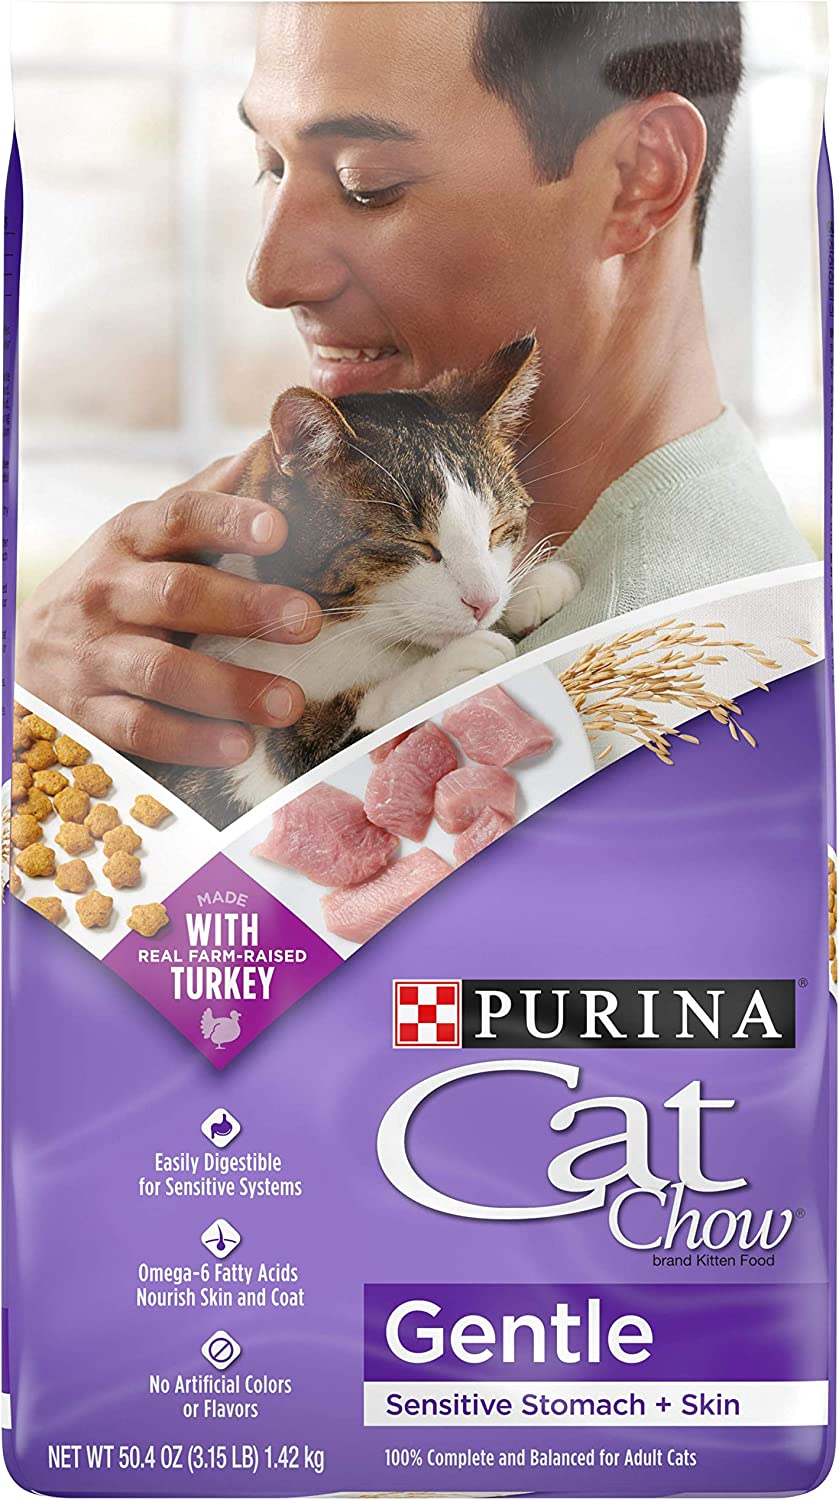 Purina Cat Chow Sensitive Stomach Dry Cat Food, Gentle - (4) 3.15 lb. Bags